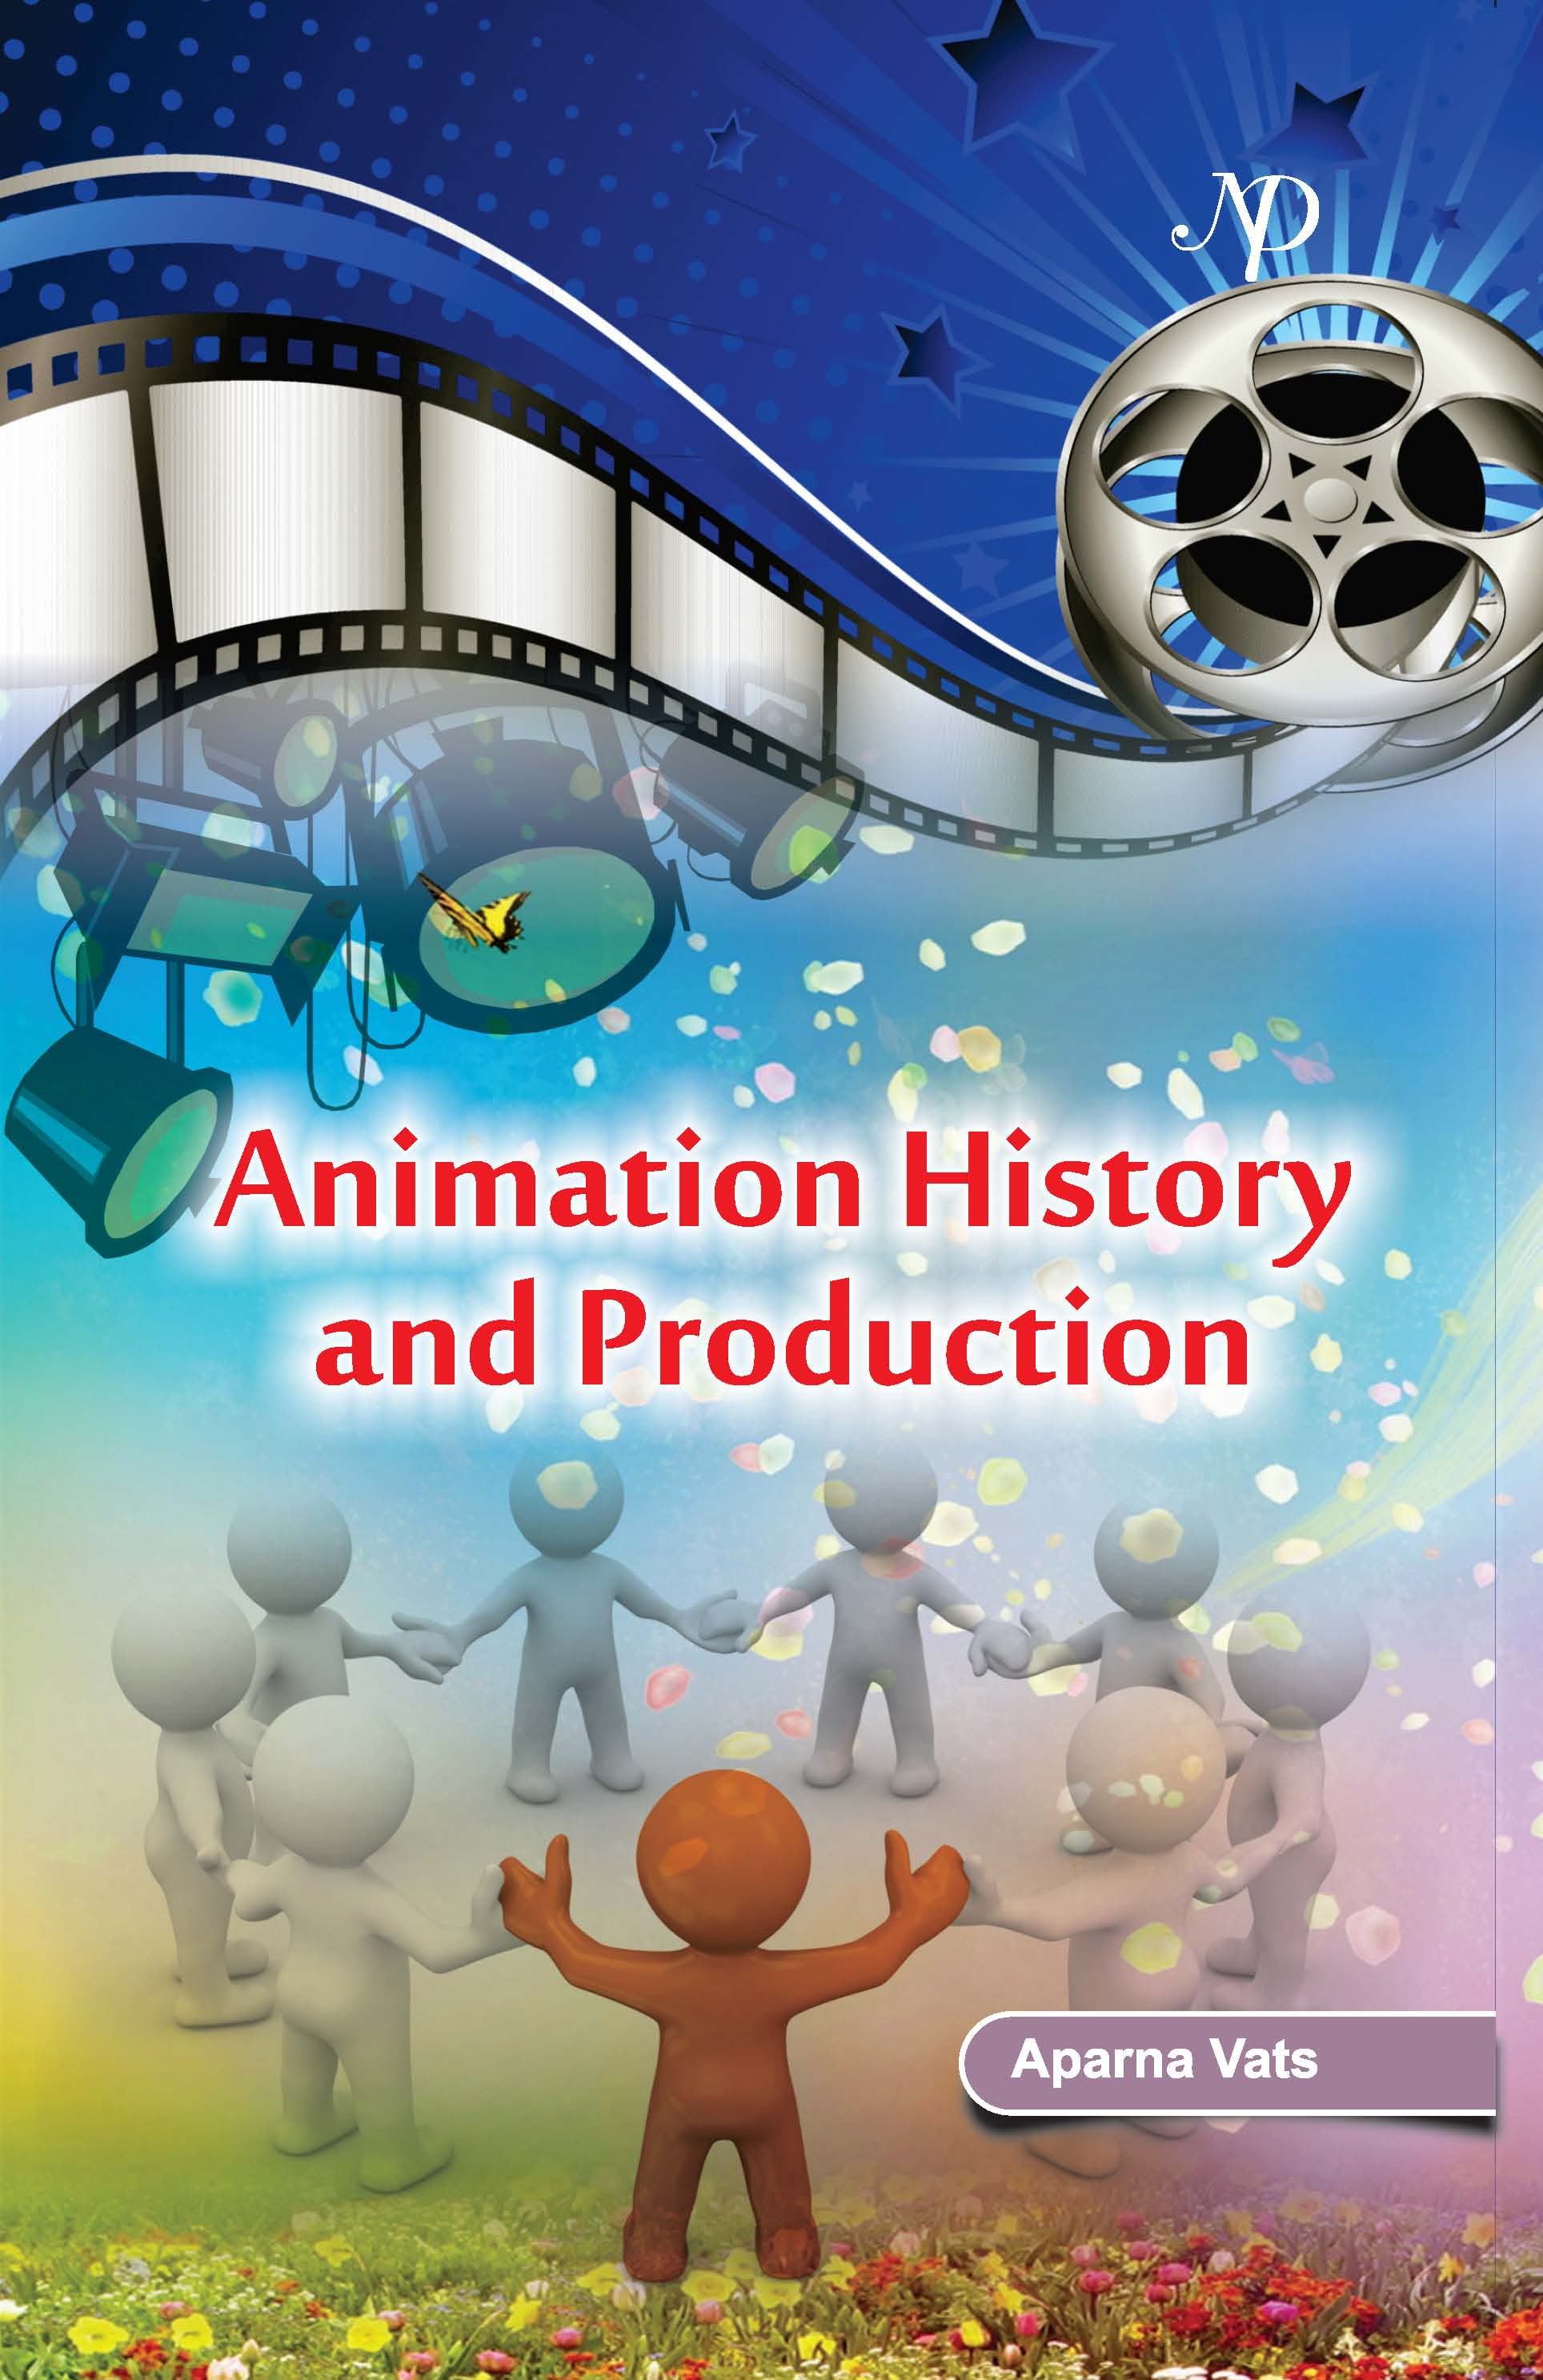 Animation History and Production